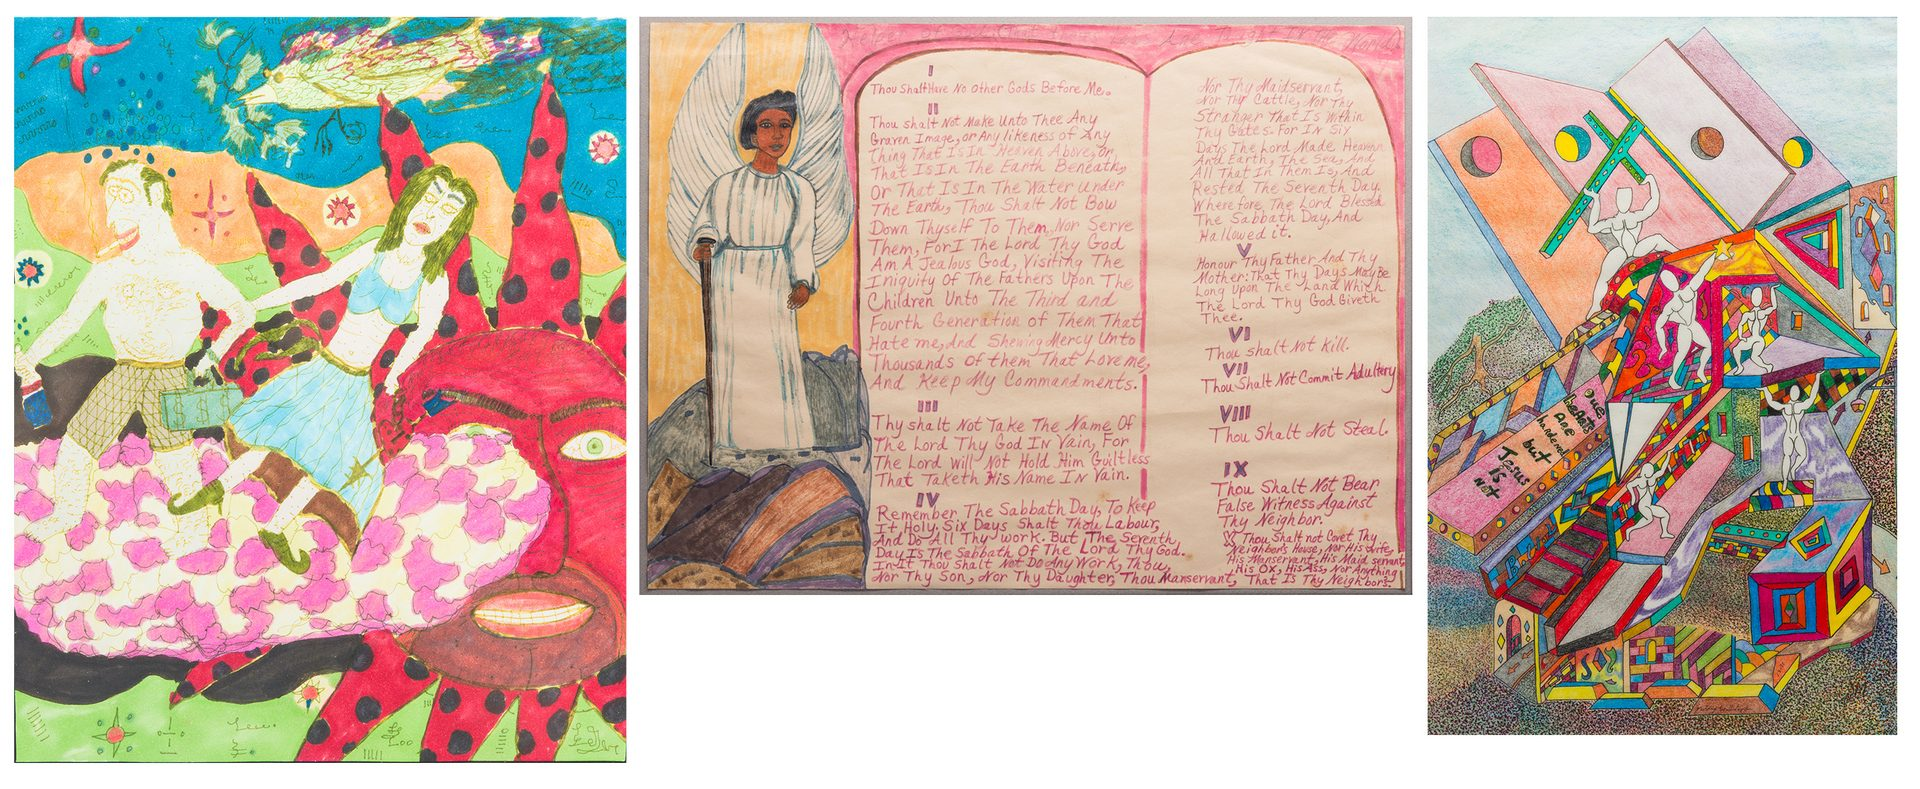 Lot 233: 3 Southern Folk Art Works on Paper